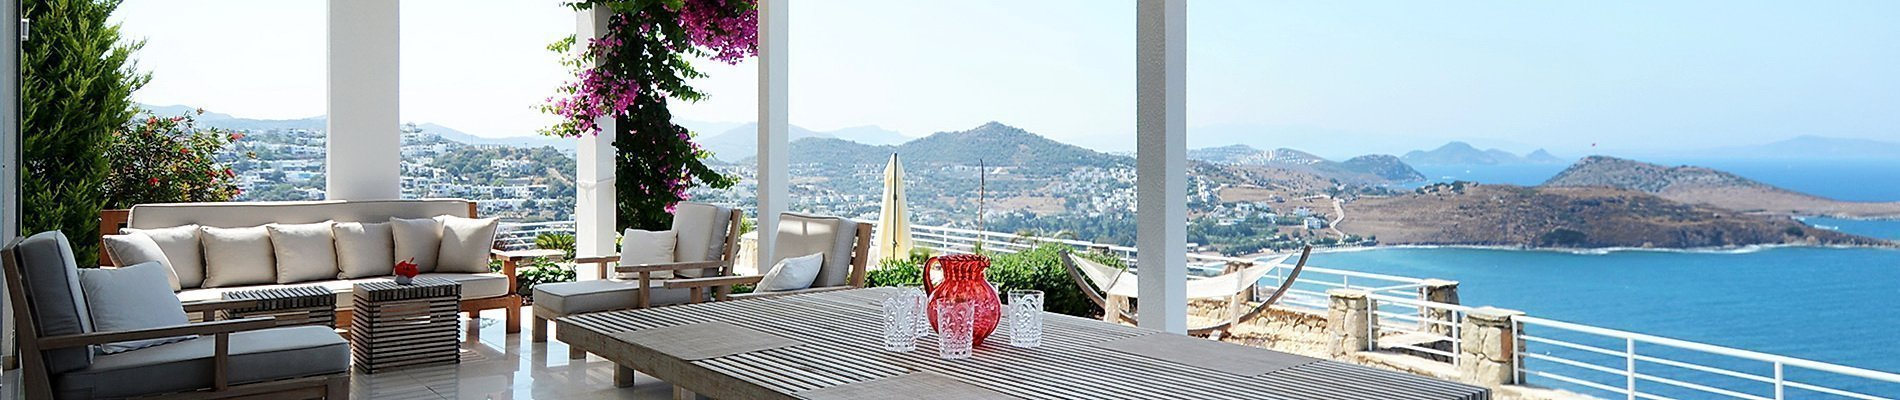 Homepage_Terrave_View_Bodrum_Property_Turkey_1900x400